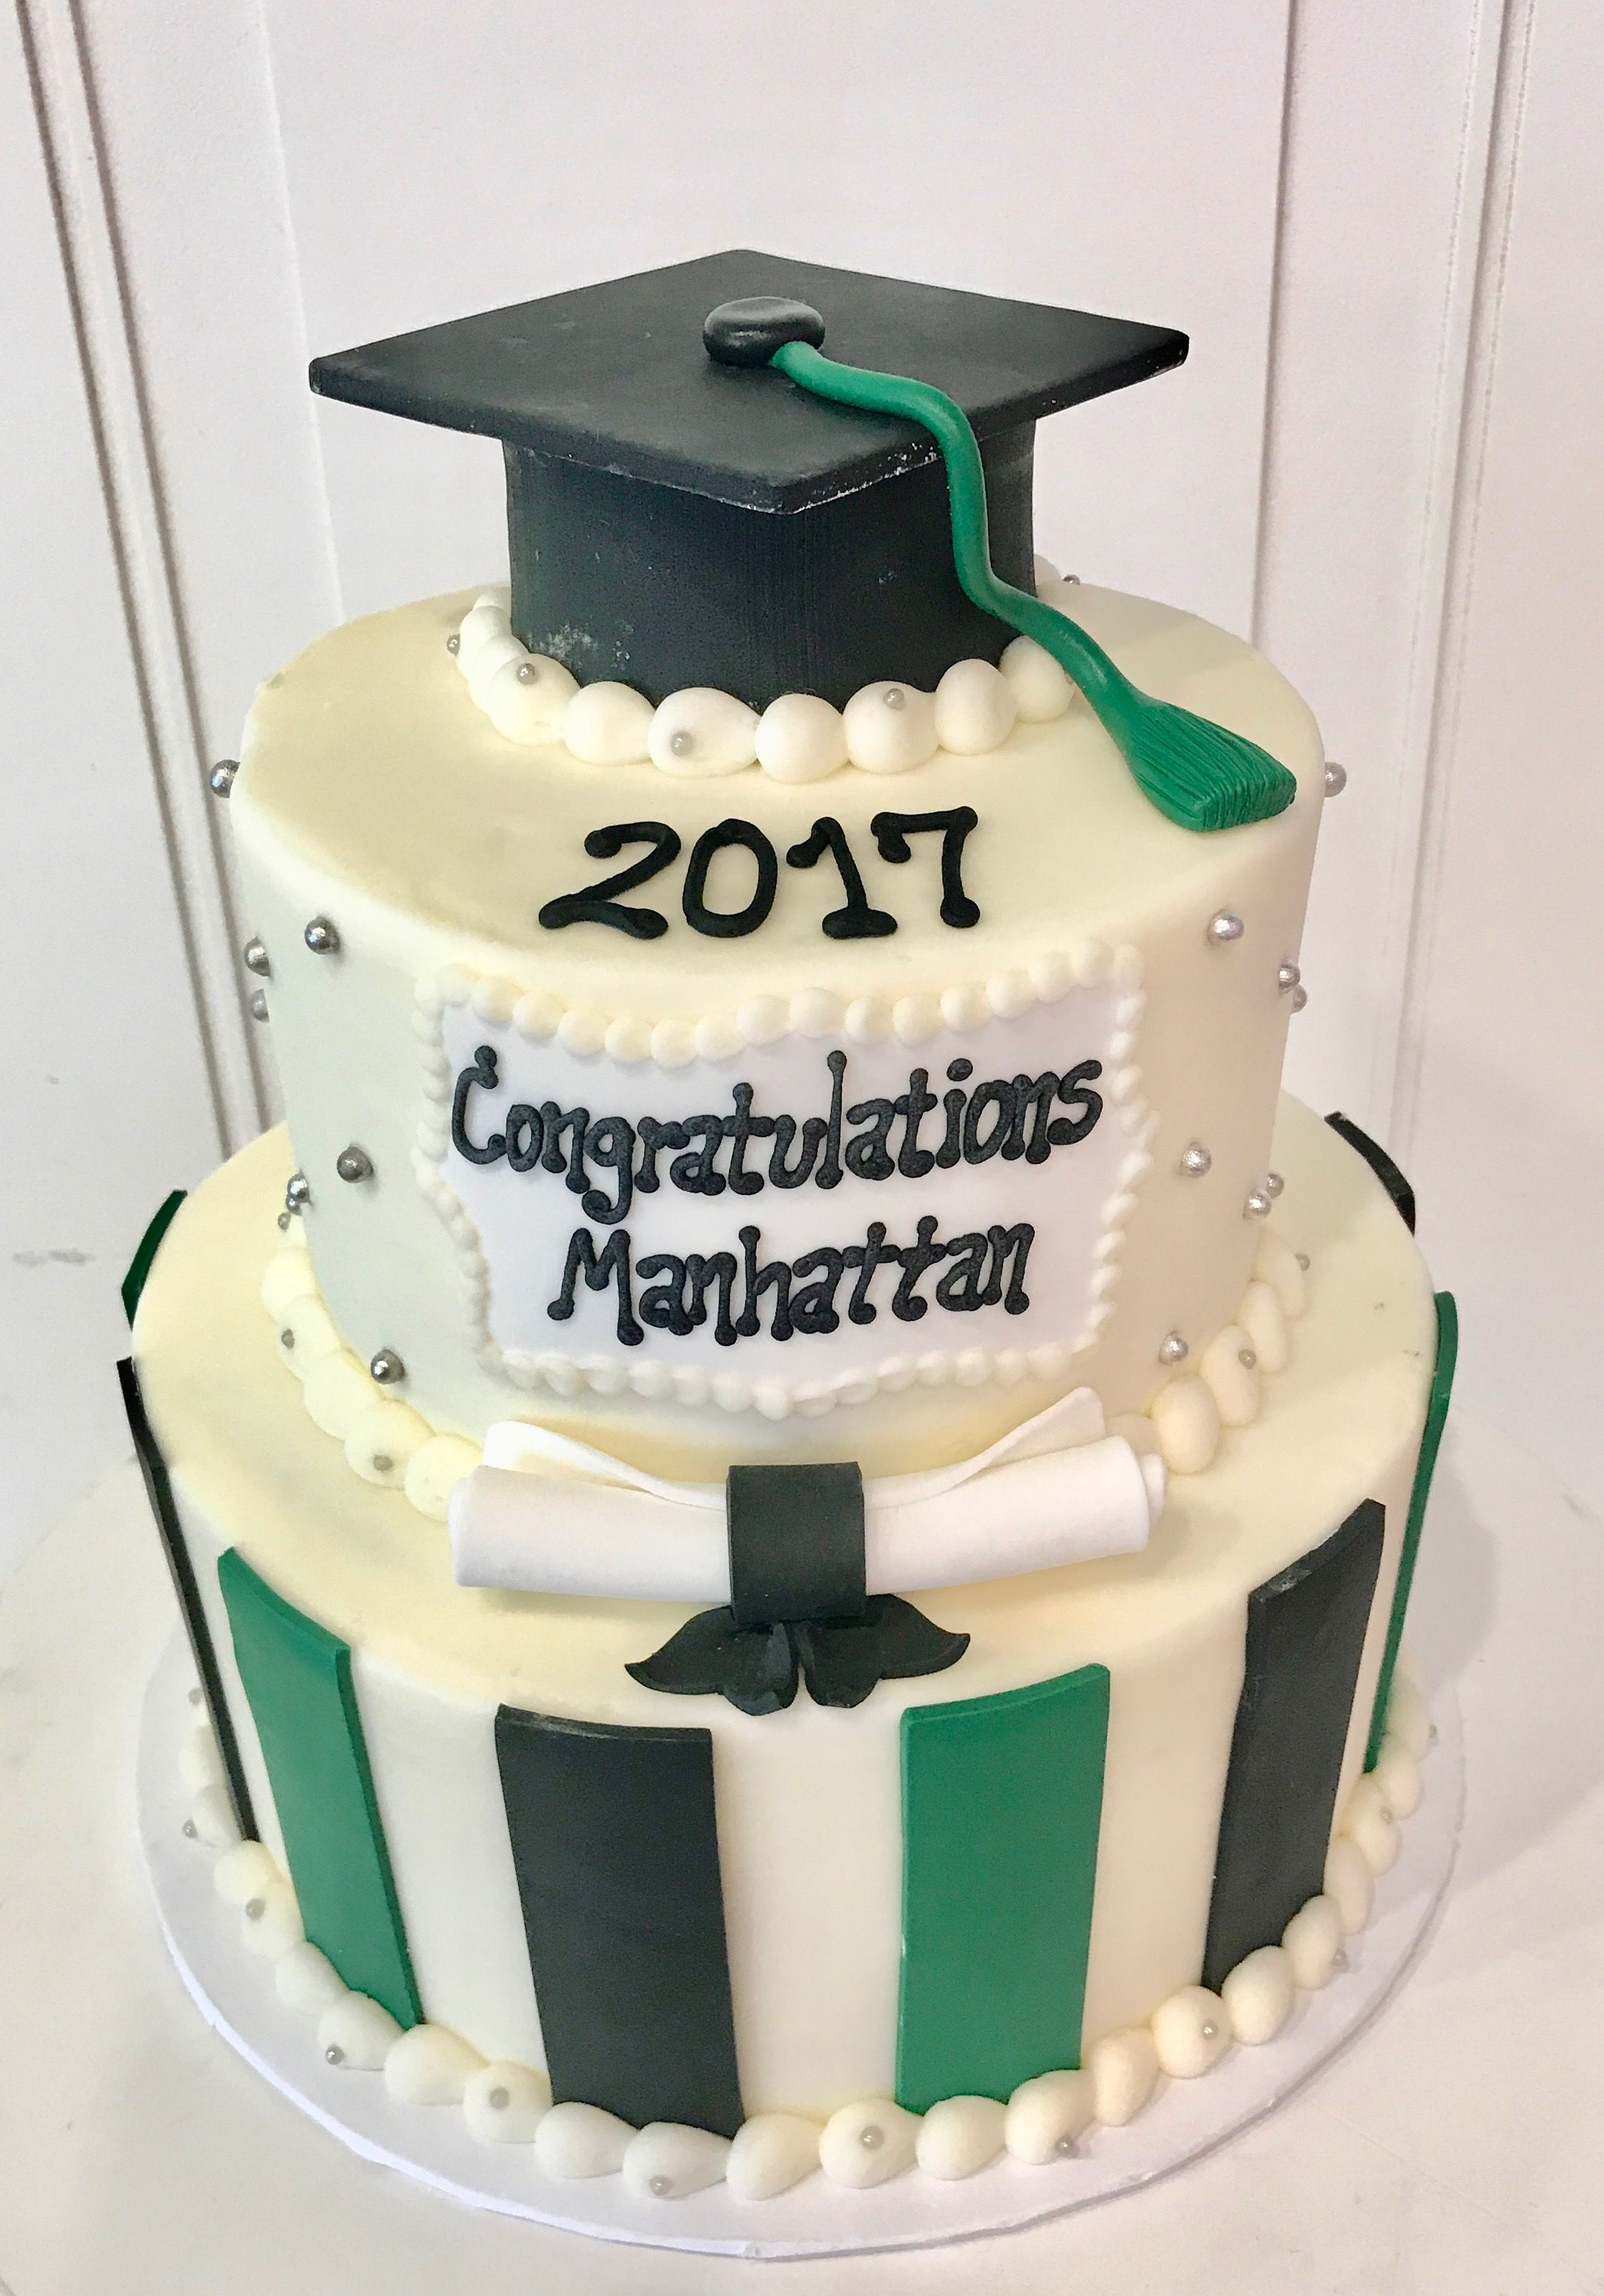 Graduation Cake 3 Tier Vanilla And Chocolate With Buttercream